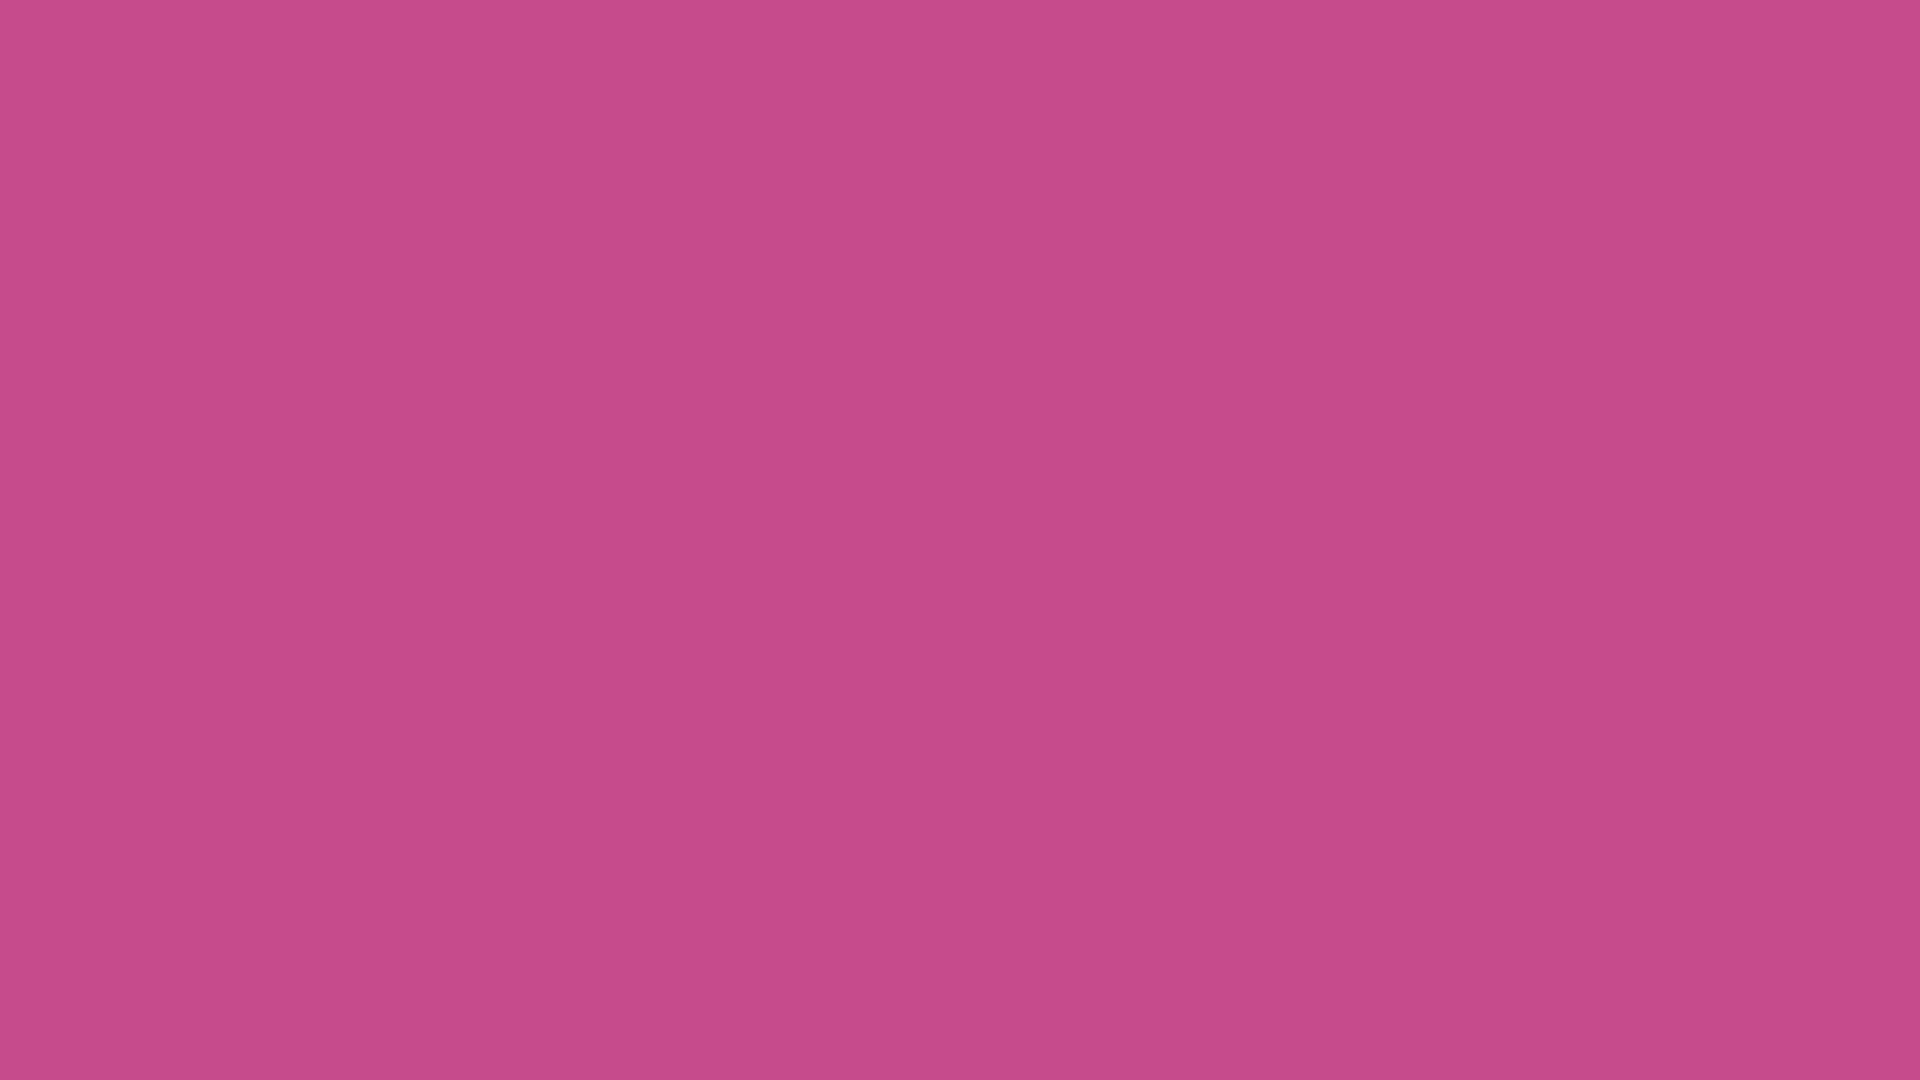 1920x1080 Mulberry Solid Color Background